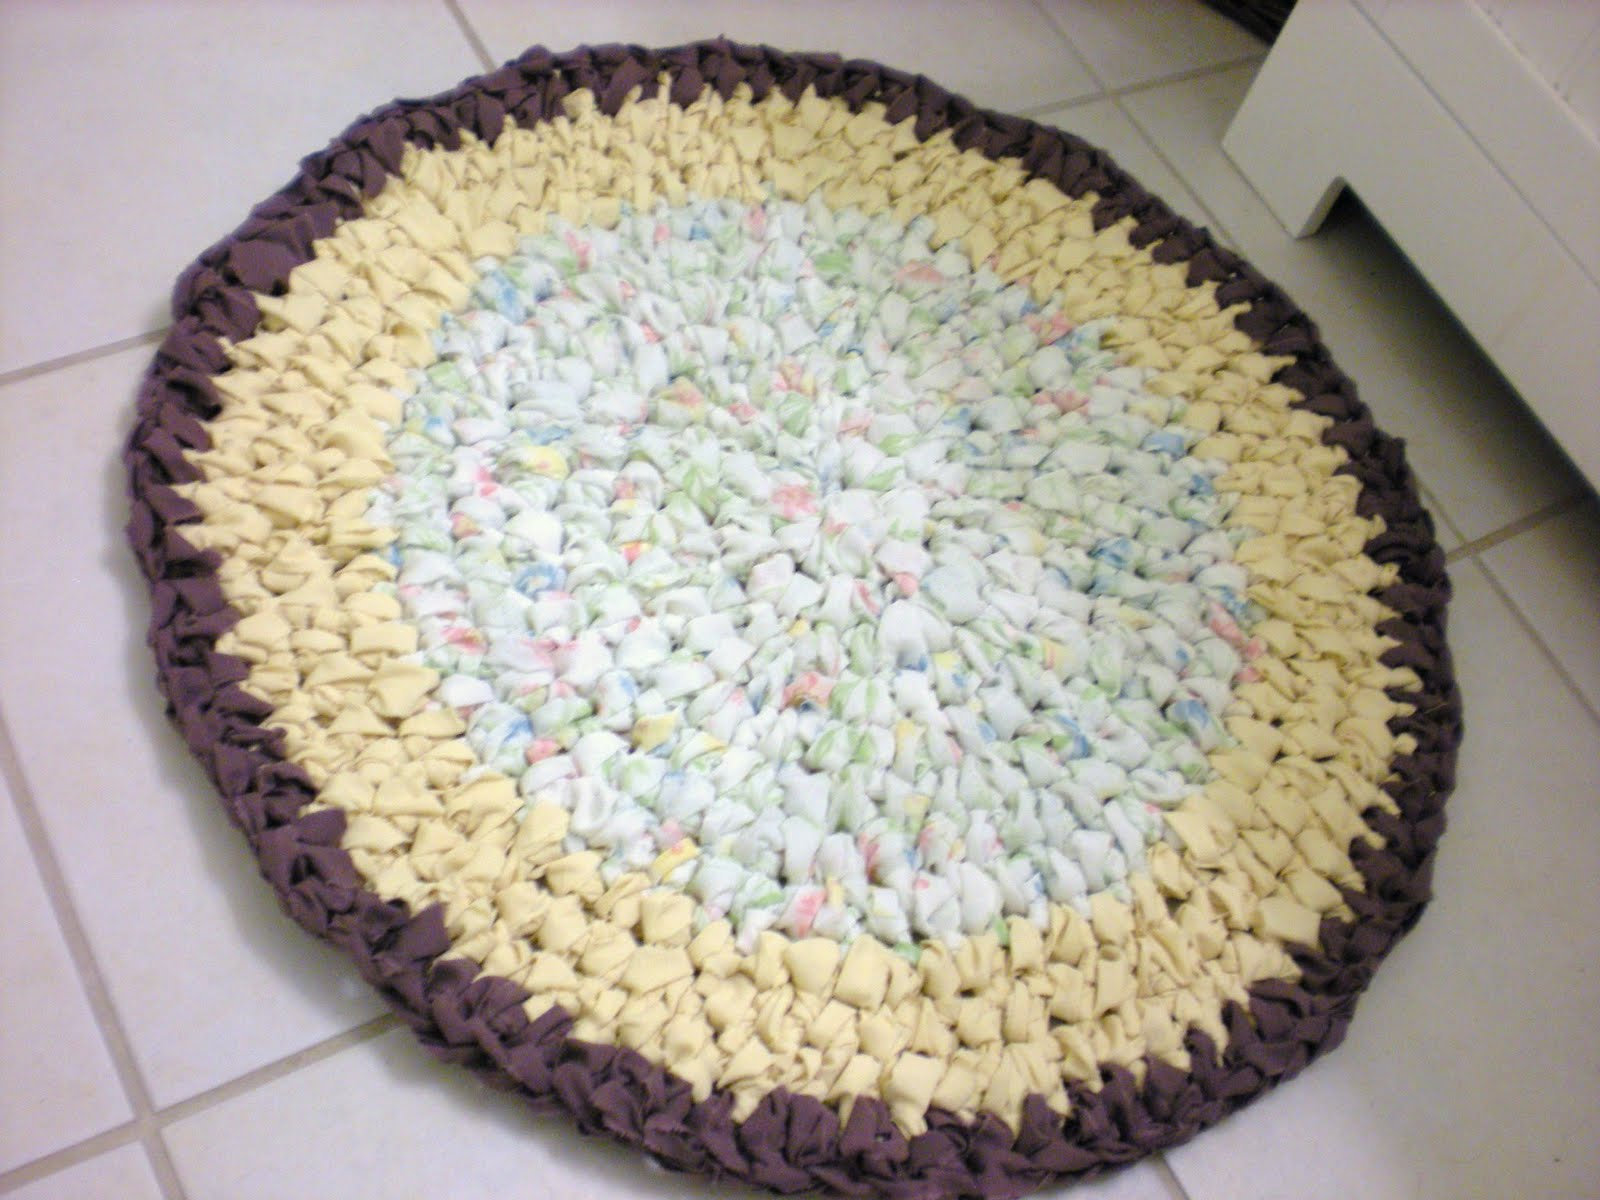 Crocheting Rag Rugs Tutorial : So I sat down and made some Rag yarn.